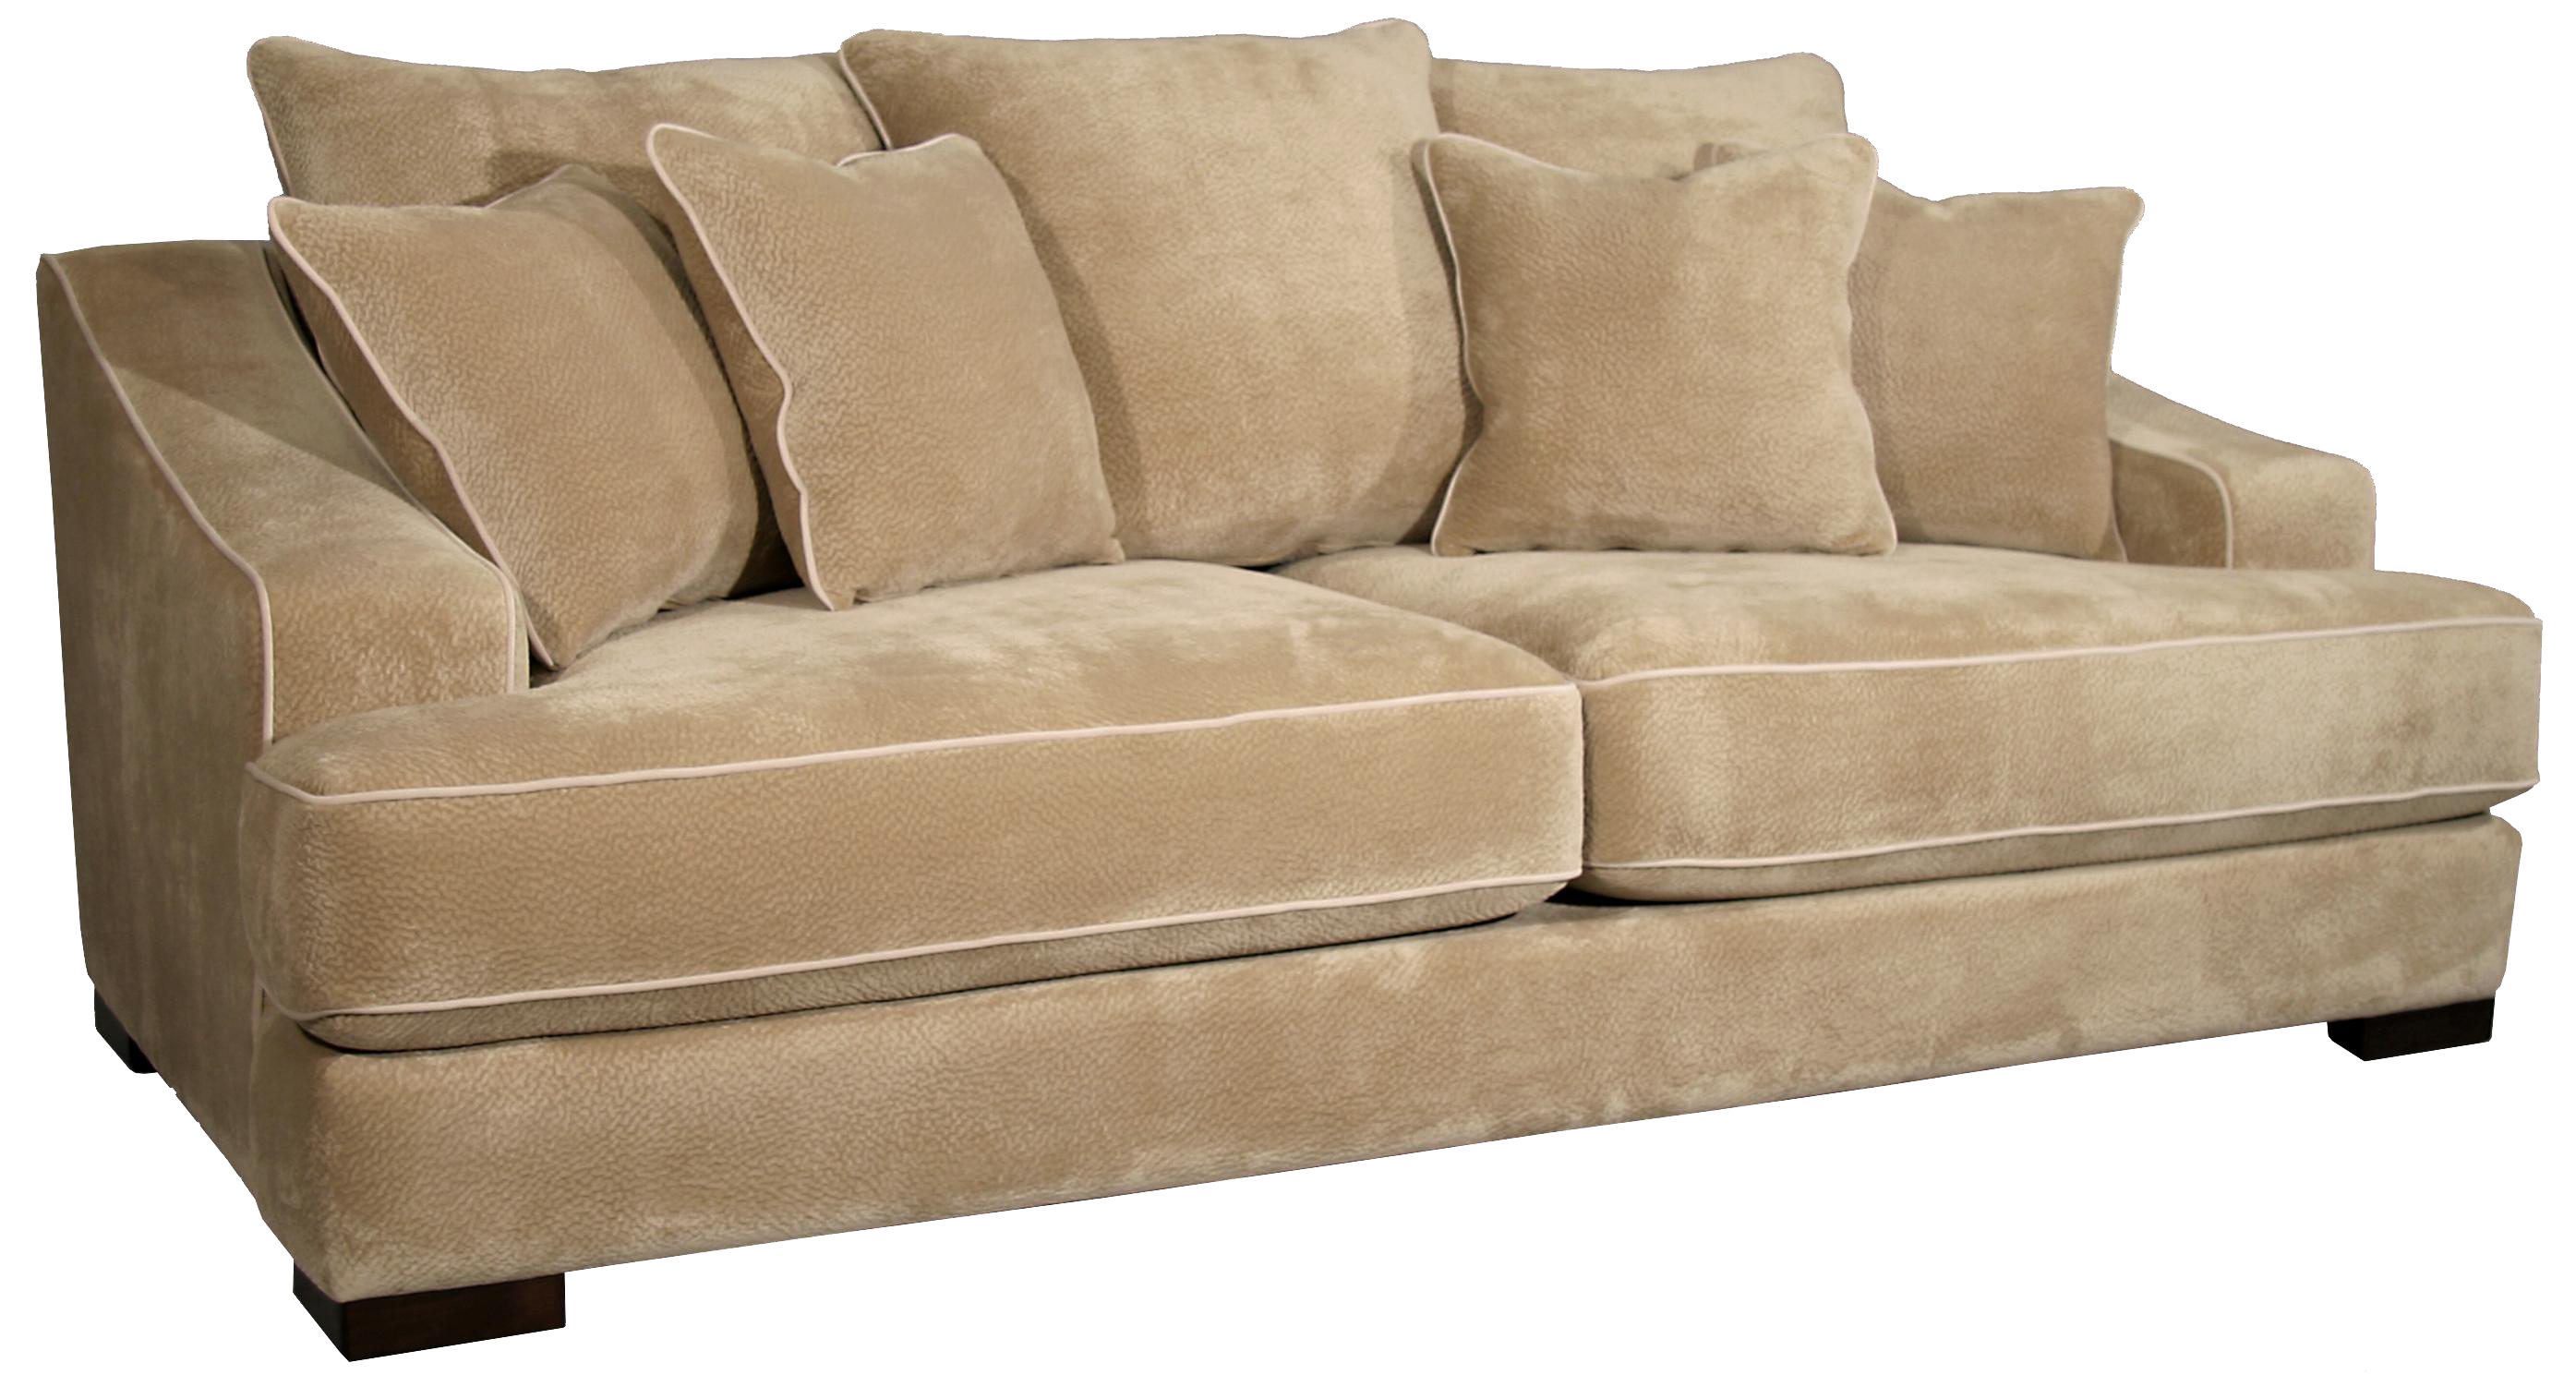 cooper sofa furniture png background